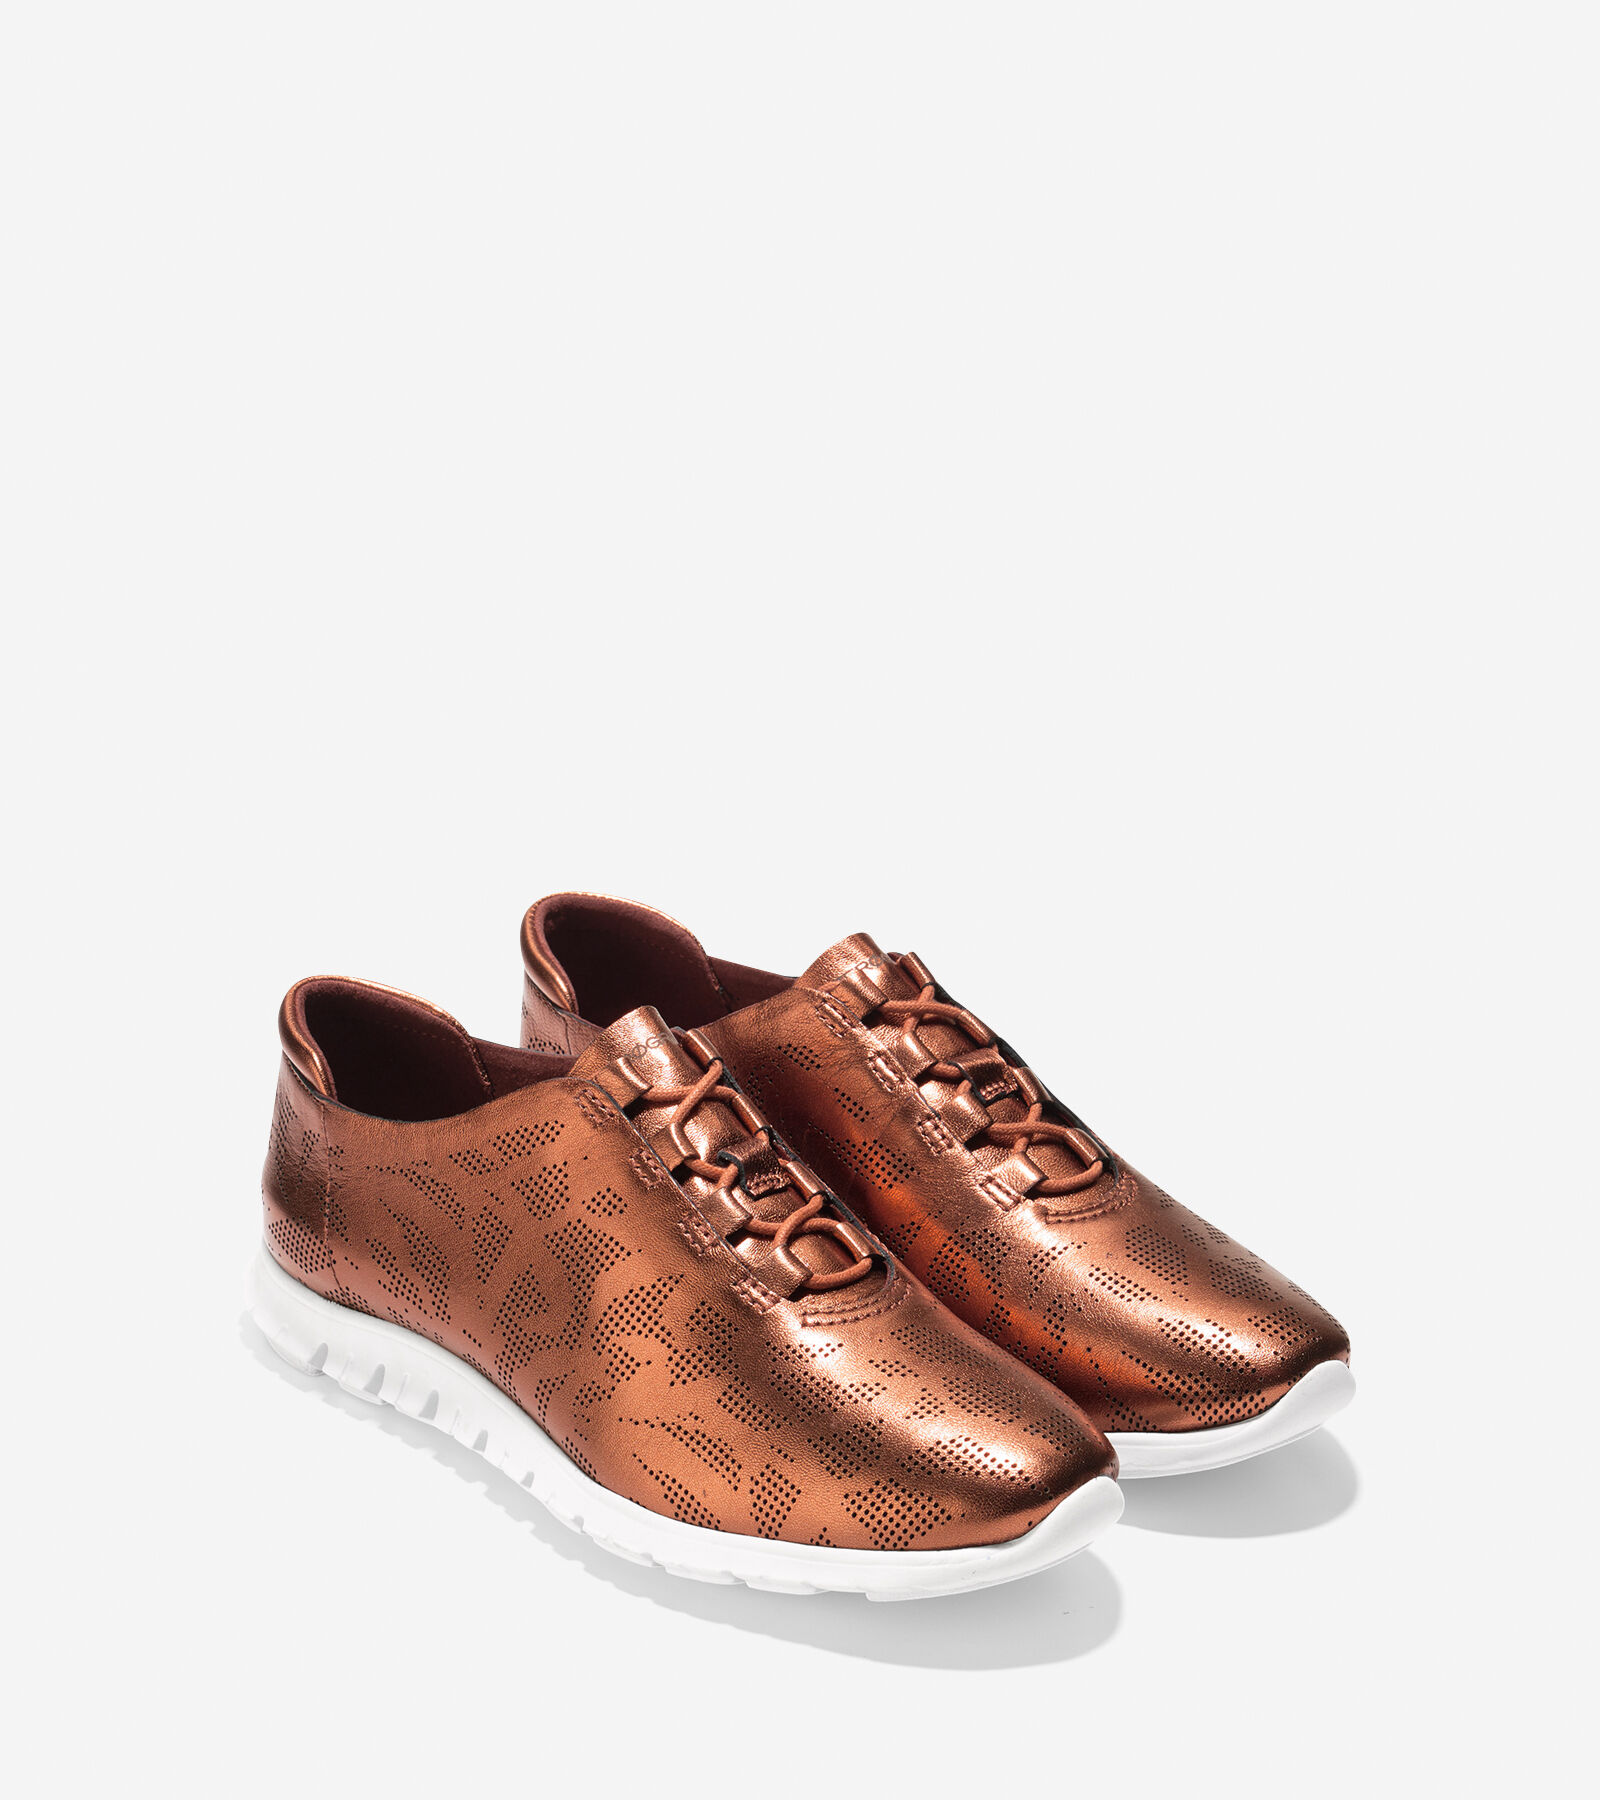 ... ZERØGRAND Perforated Trainer; ZERØGRAND Perforated Trainer. #colehaan